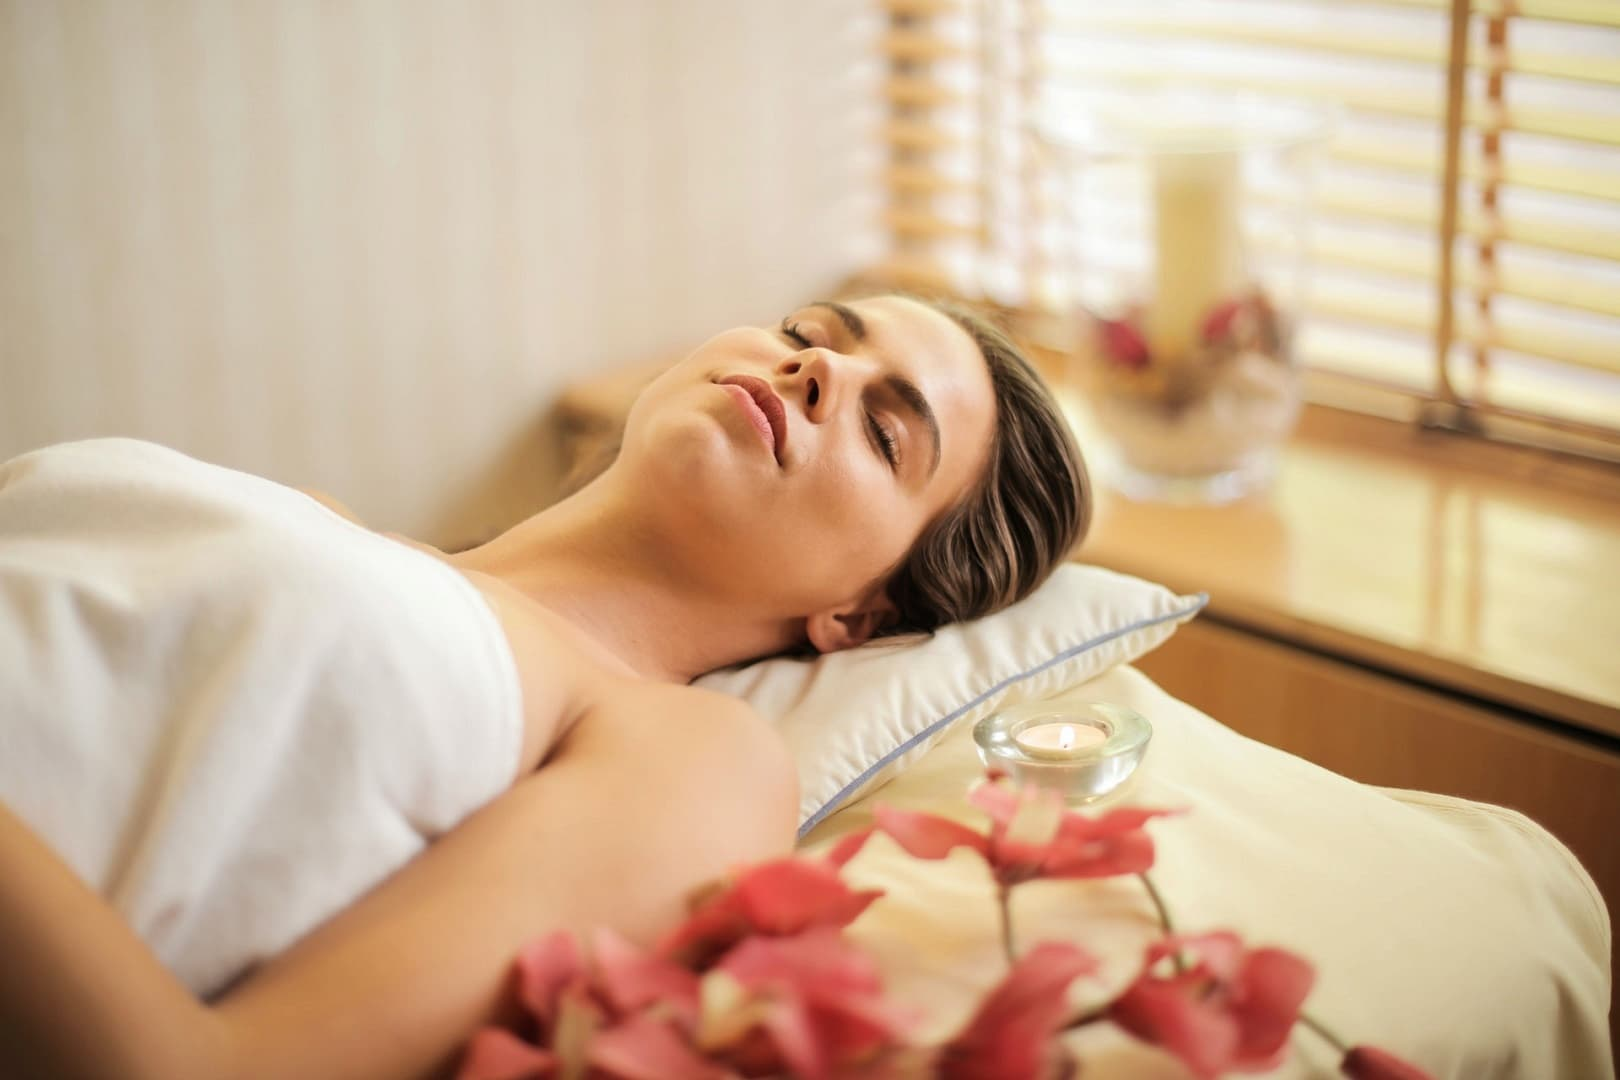 What to expect from natural beauty therapies